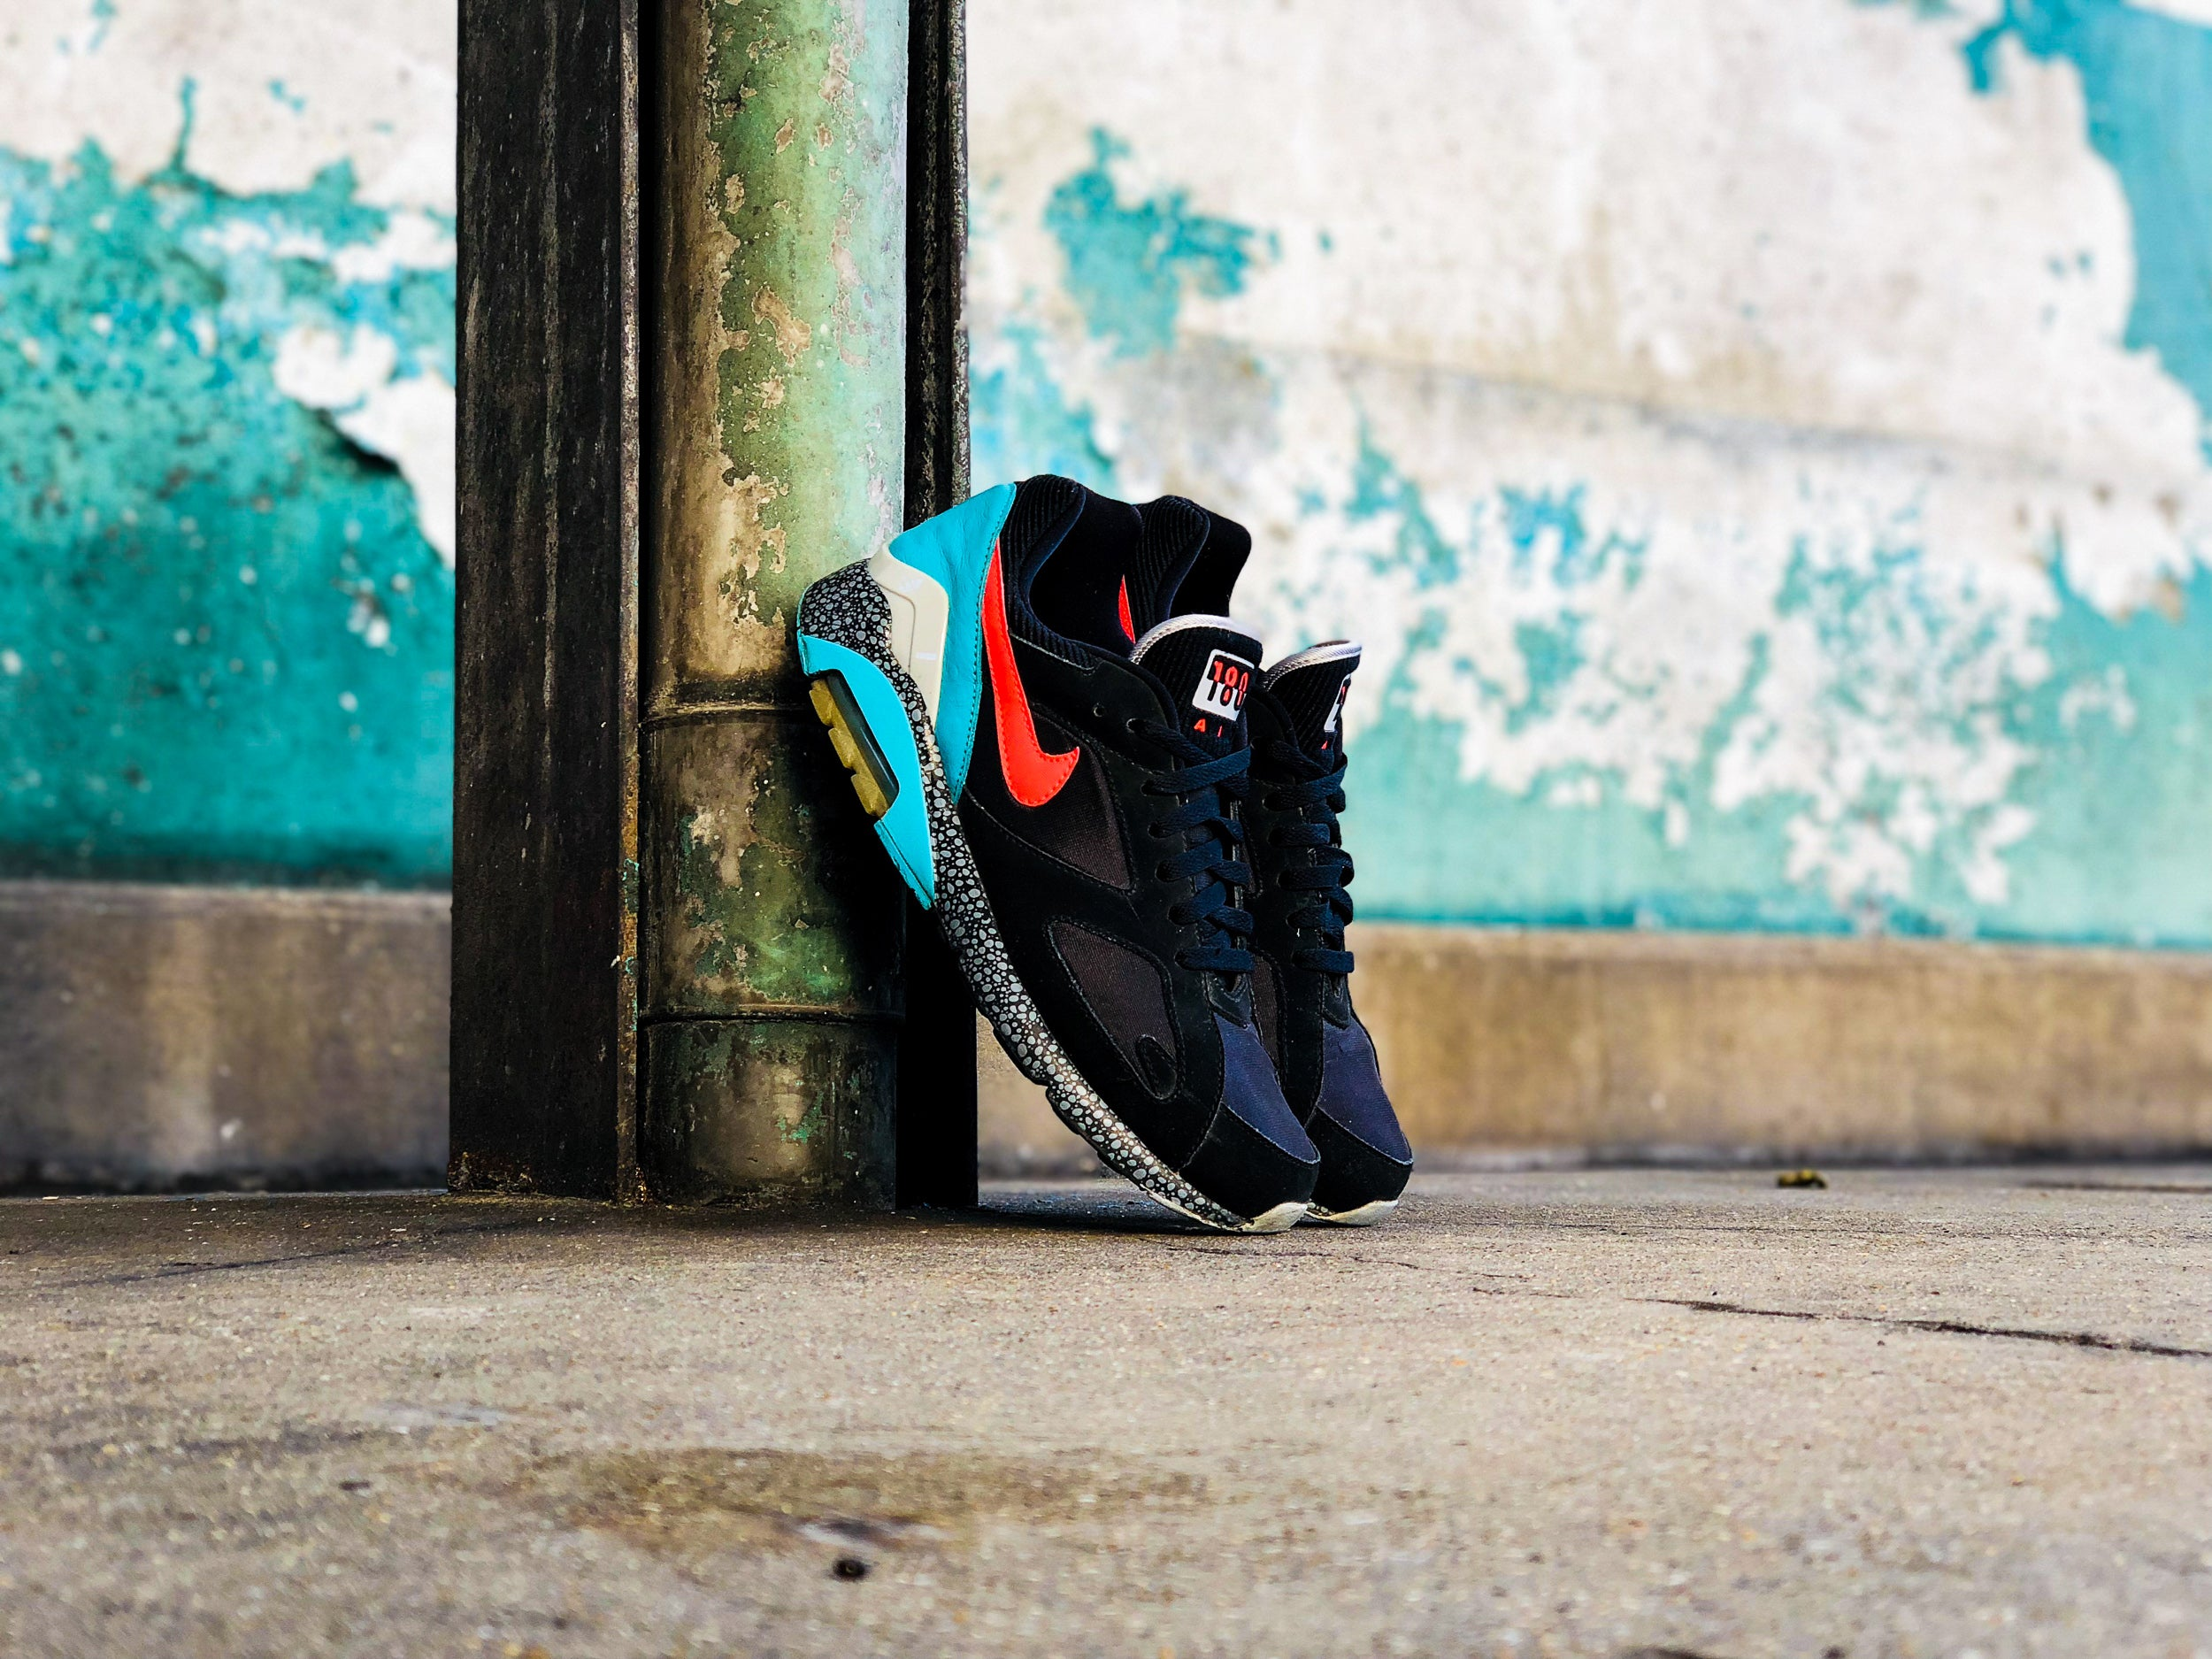 9e5e8bc719 ... italy size x nike air max 180 urban safari la boite collector 83829  73849